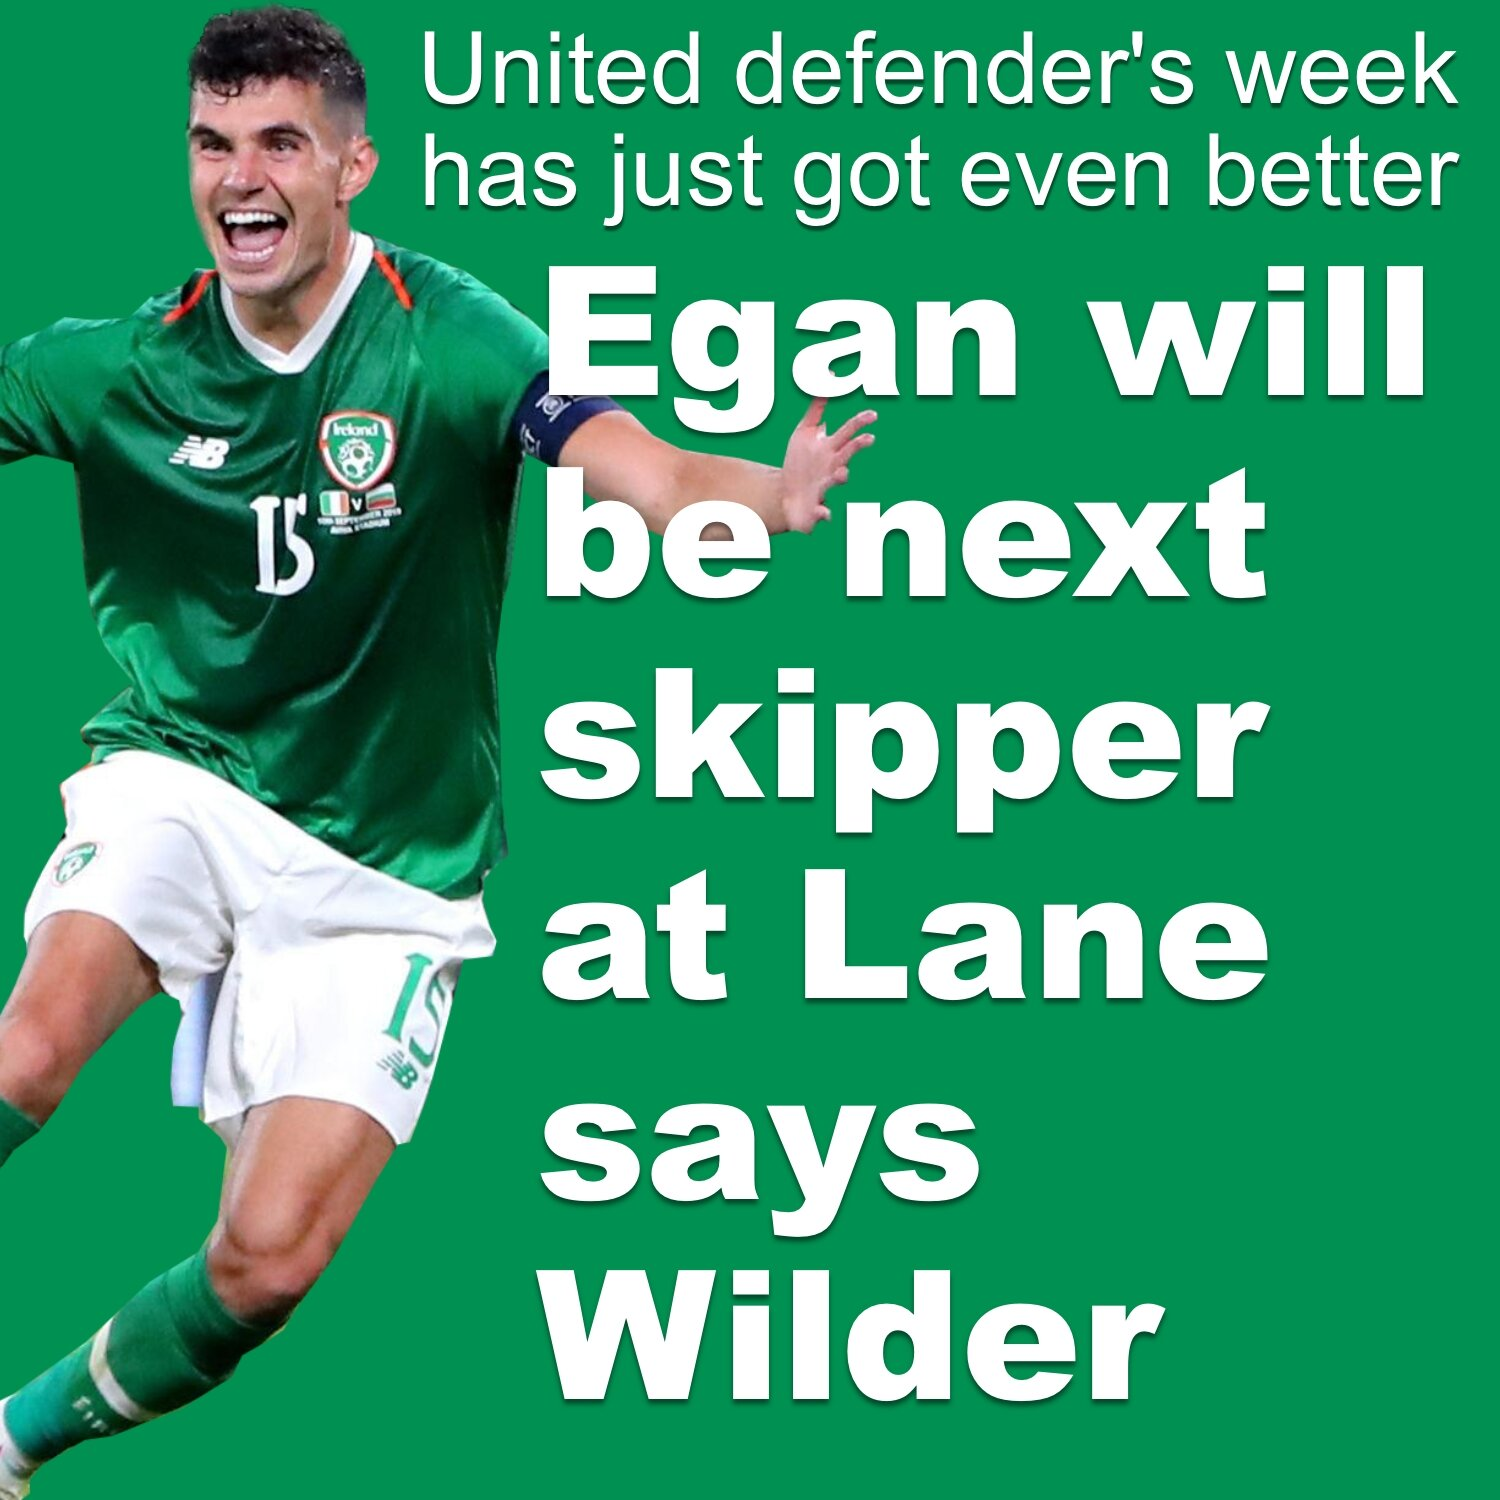 John Egan will be next Blades skipper says boss Wilder in week defender captains Republic of Ireland for first time